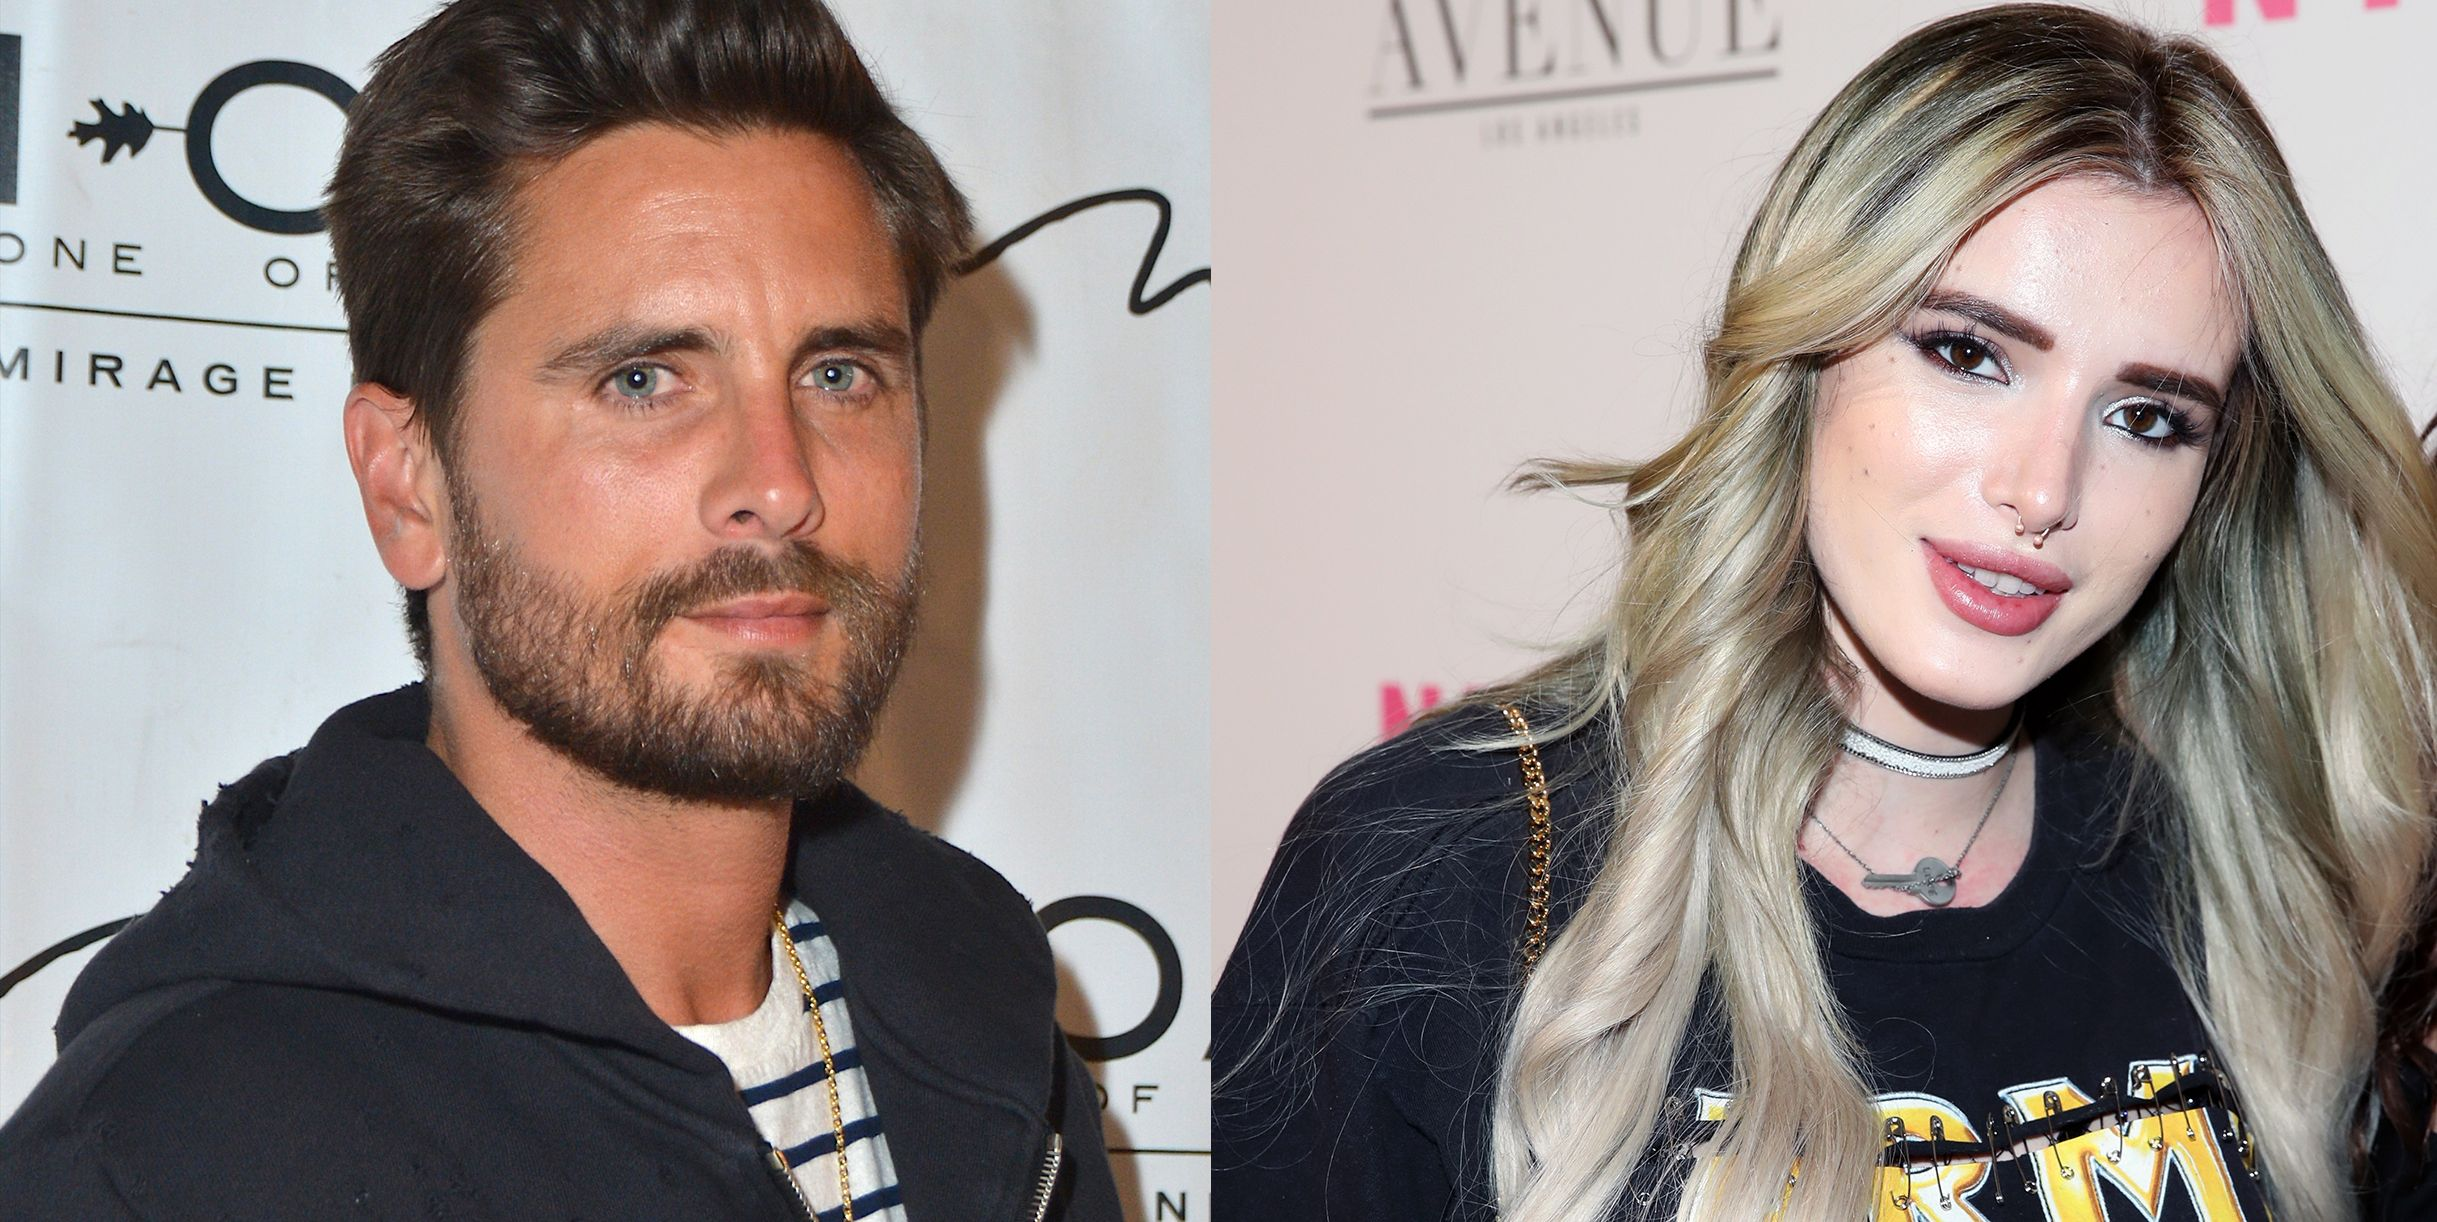 Scott Disick Hung Out With An Ex After Arriving in Cannes with Bella Thorne